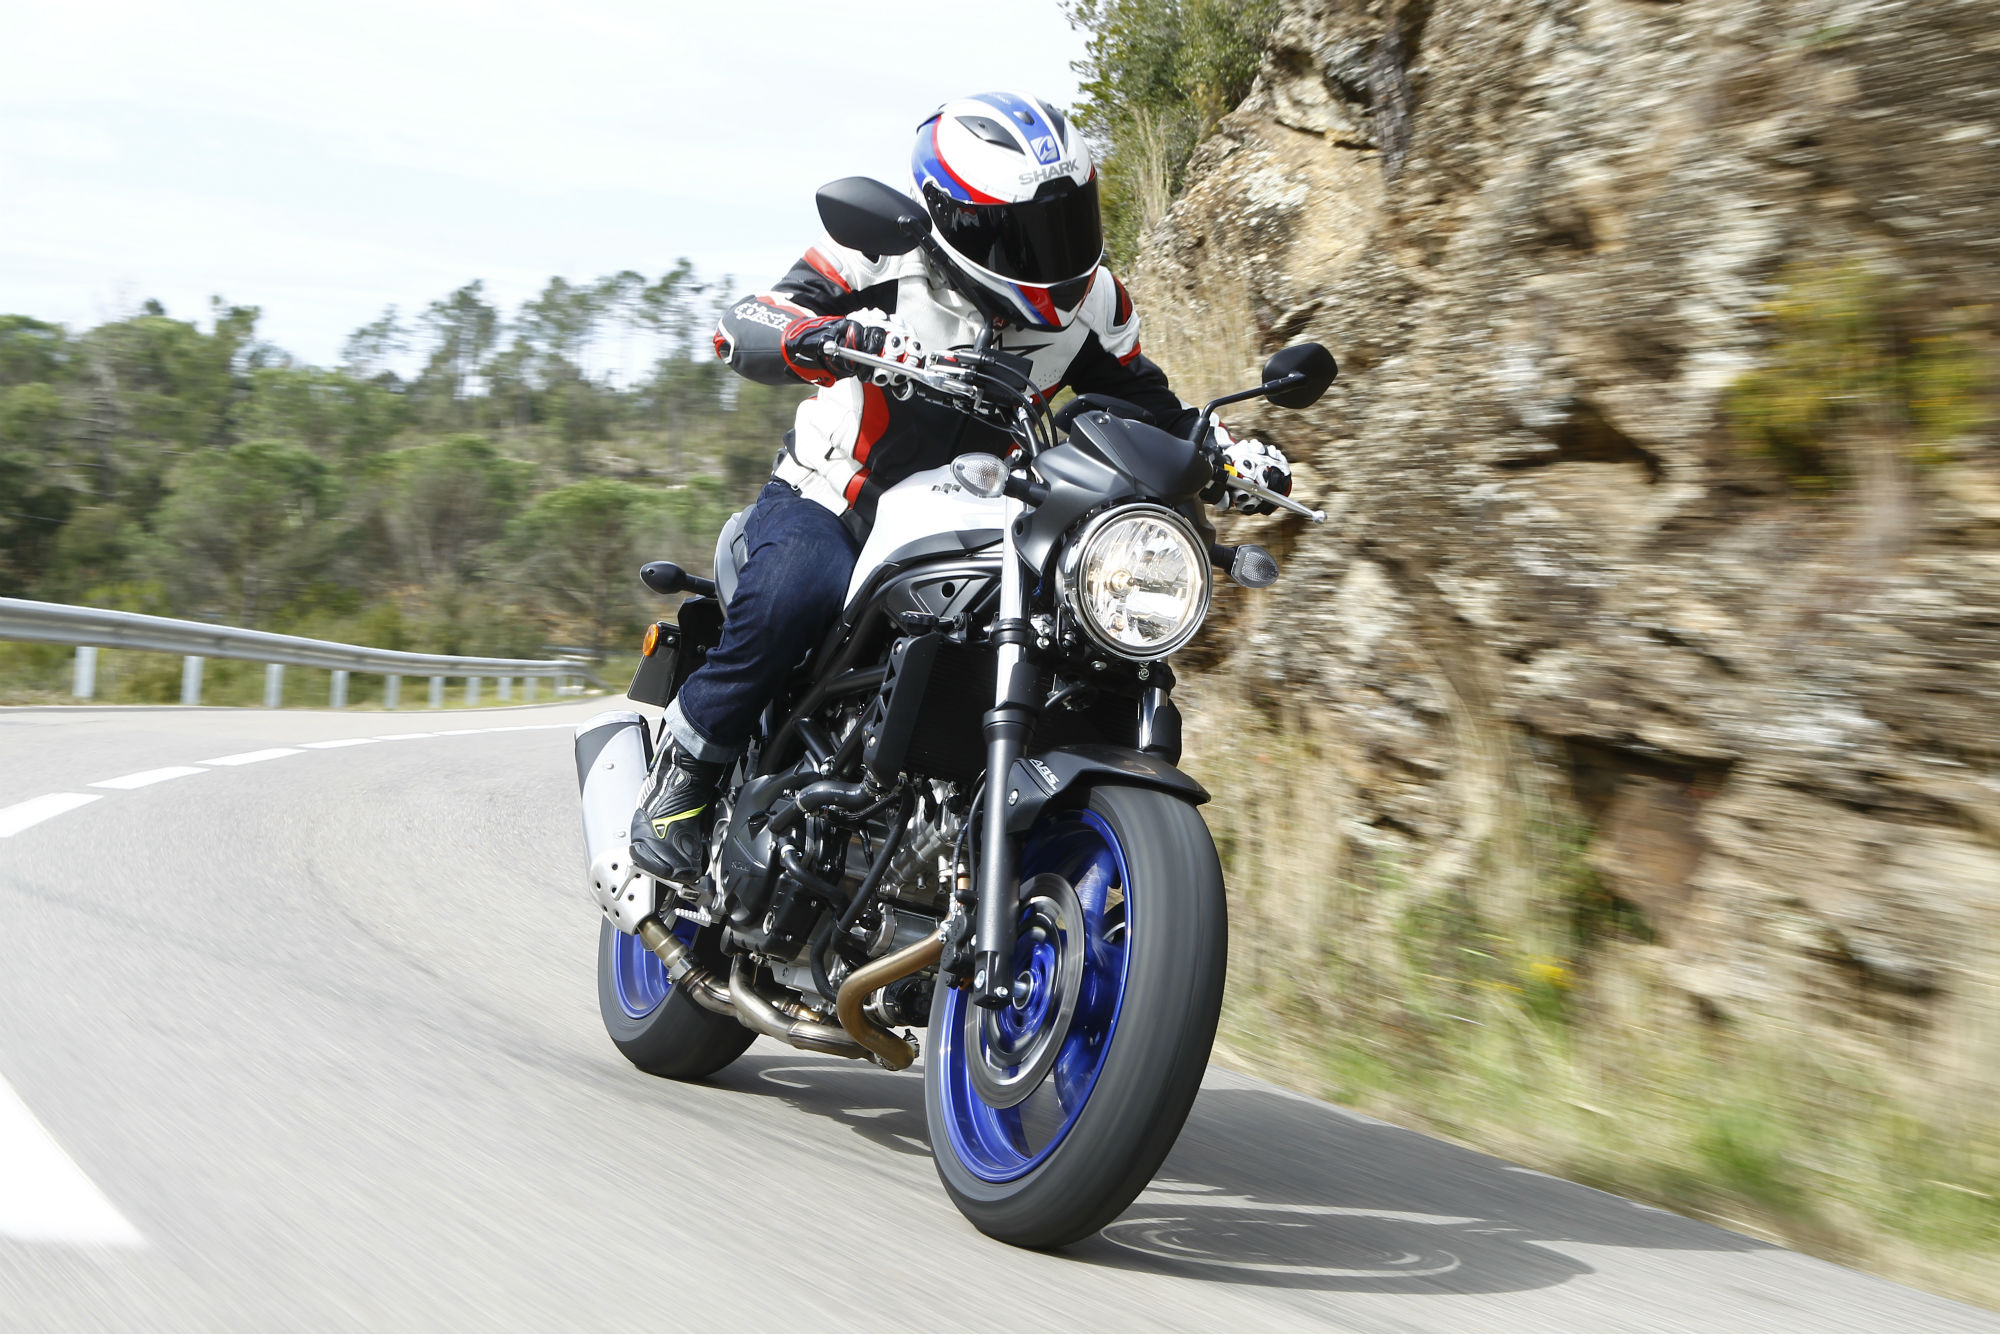 2017 Suzuki SV650 ABS - Picture 664037 | motorcycle review